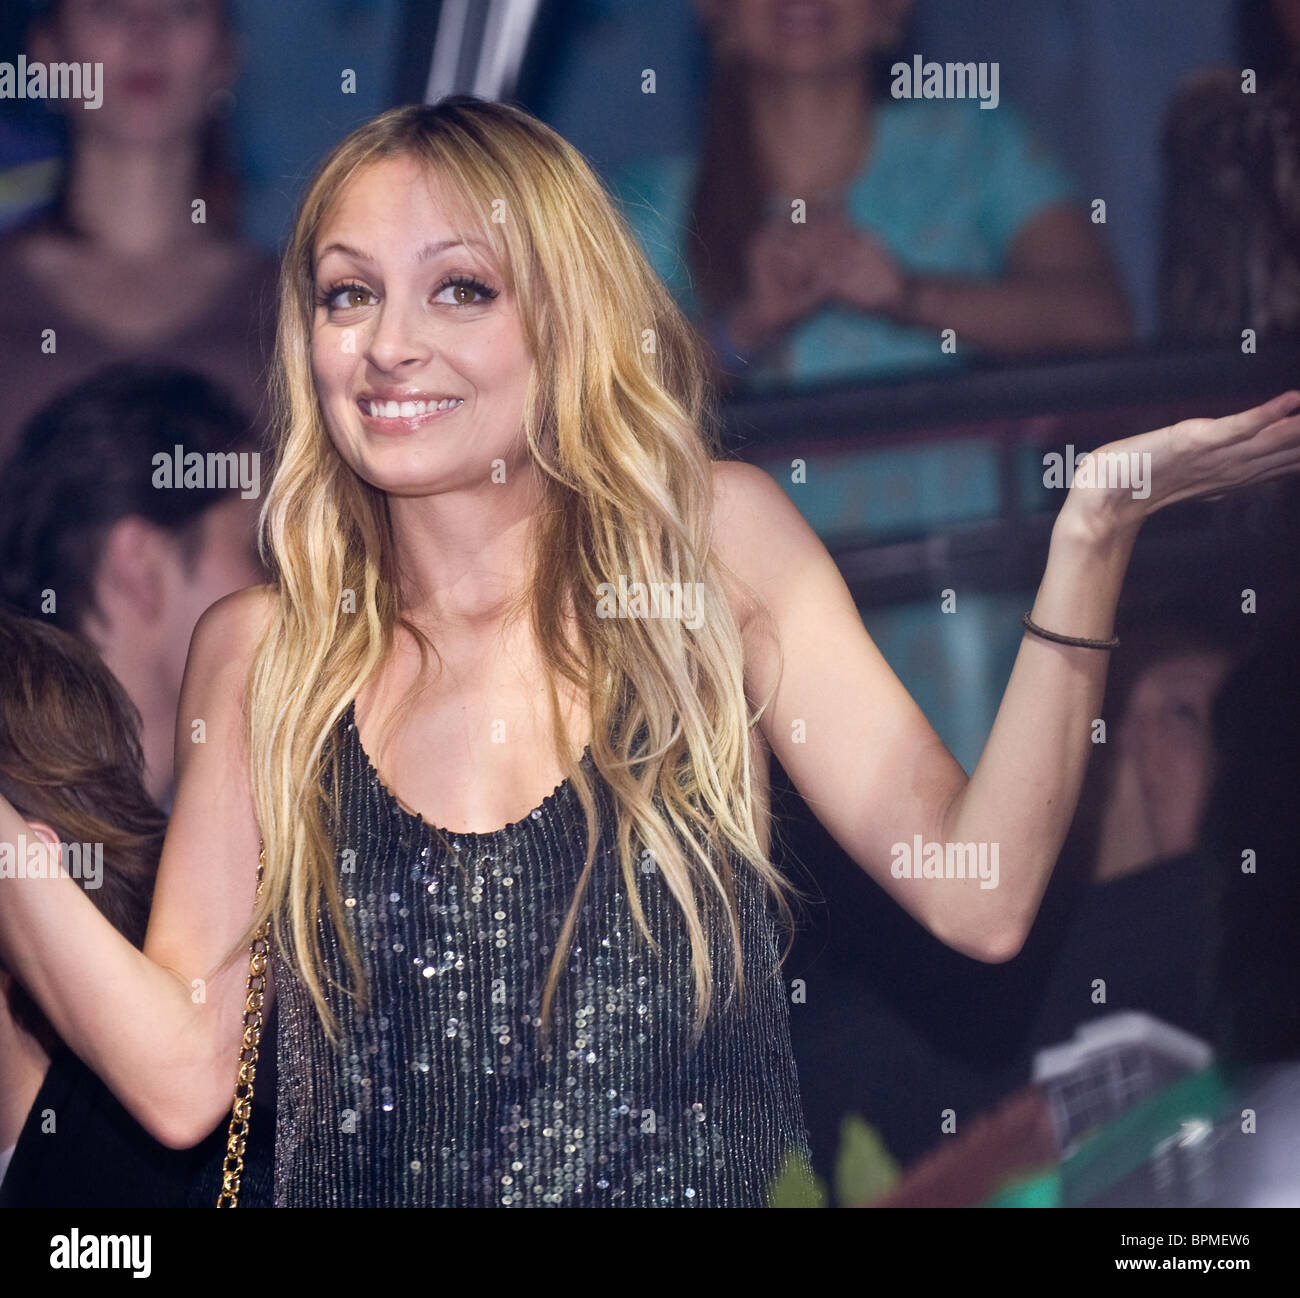 American actress, socialite Nicole Richie appears at party in Moscow's club - Stock Image